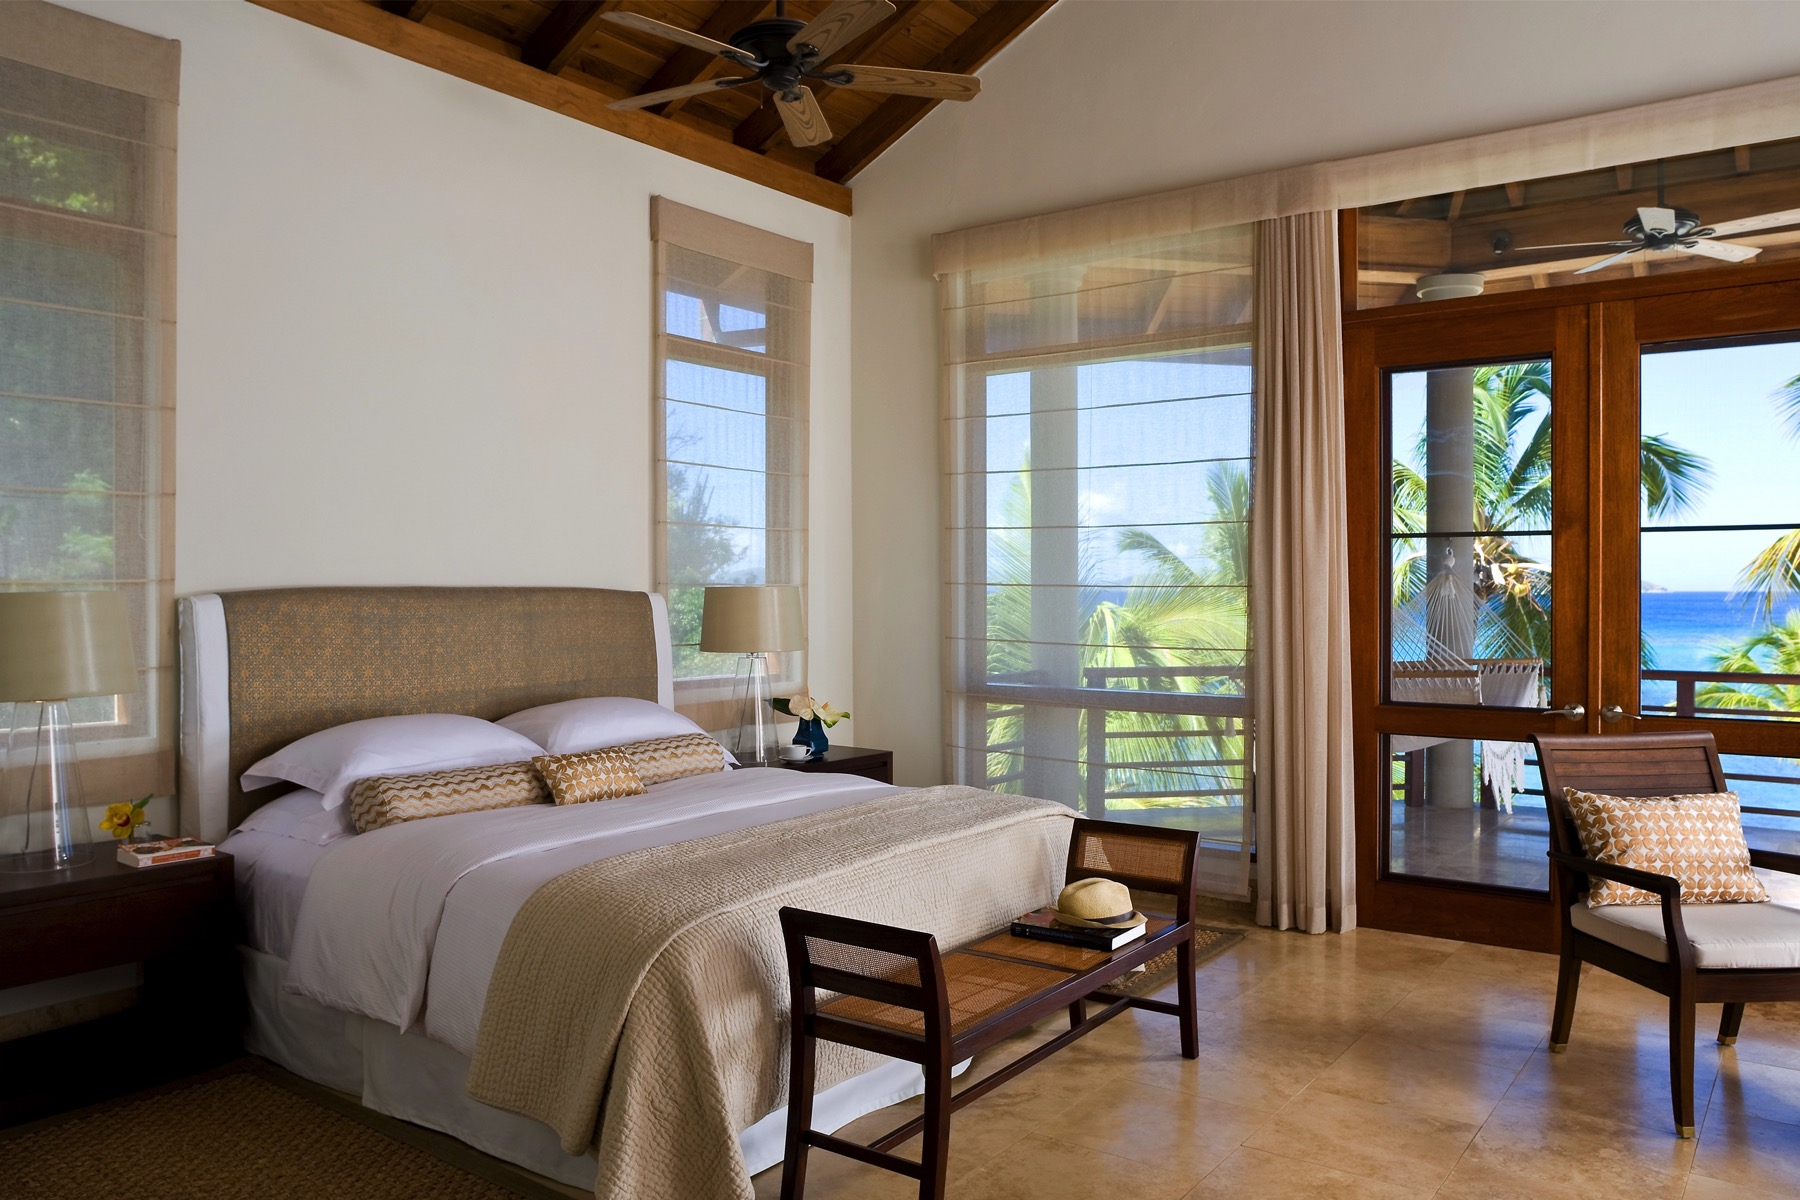 Additional photo for property listing at Aquamare Mahoe Bay, Virgin Gorda Ilhas Virgens Britânicas